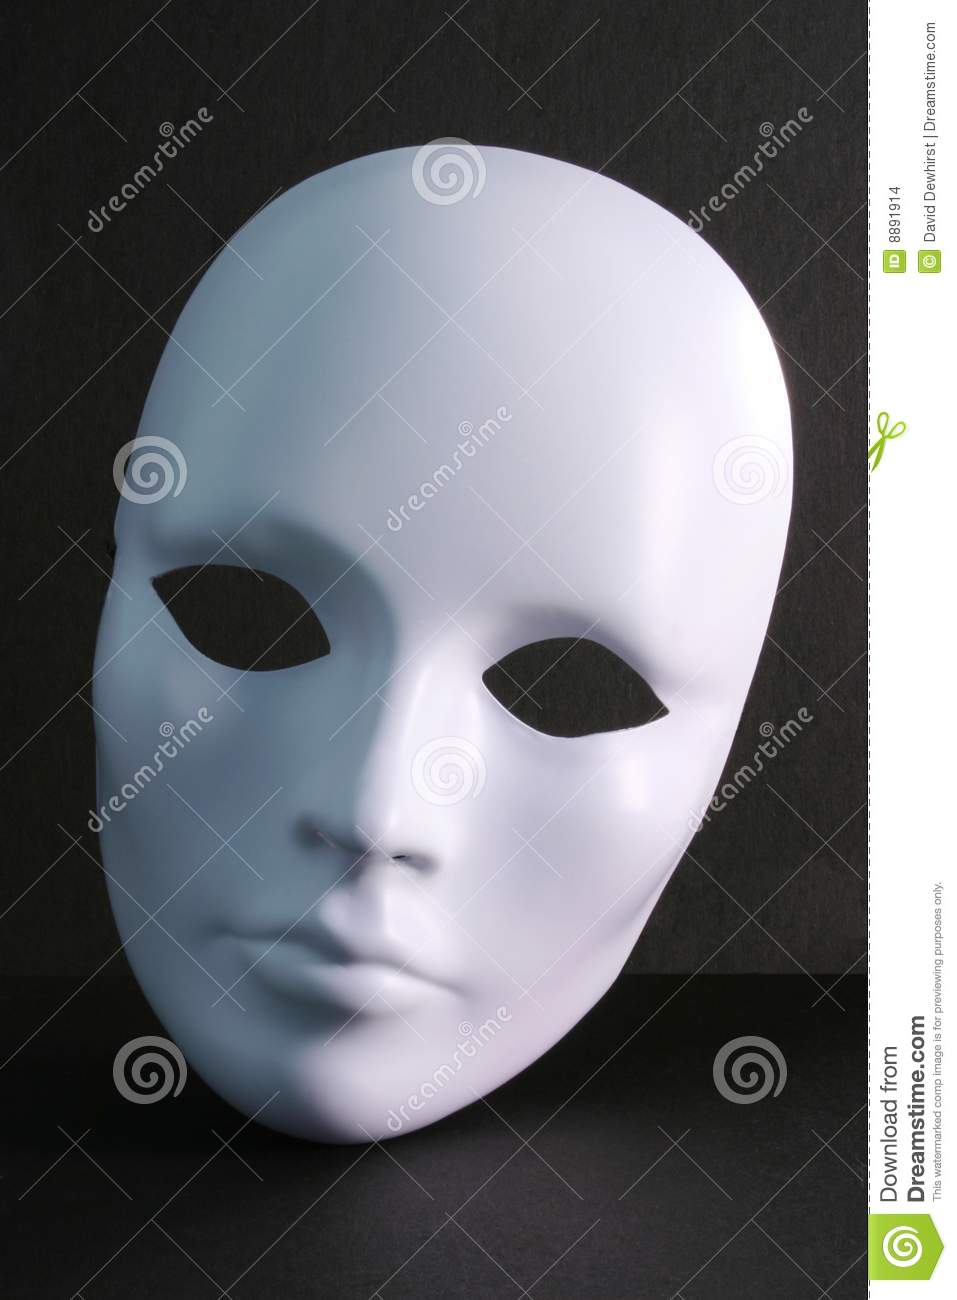 More similar stock images of ` White Mask on Dark Background `